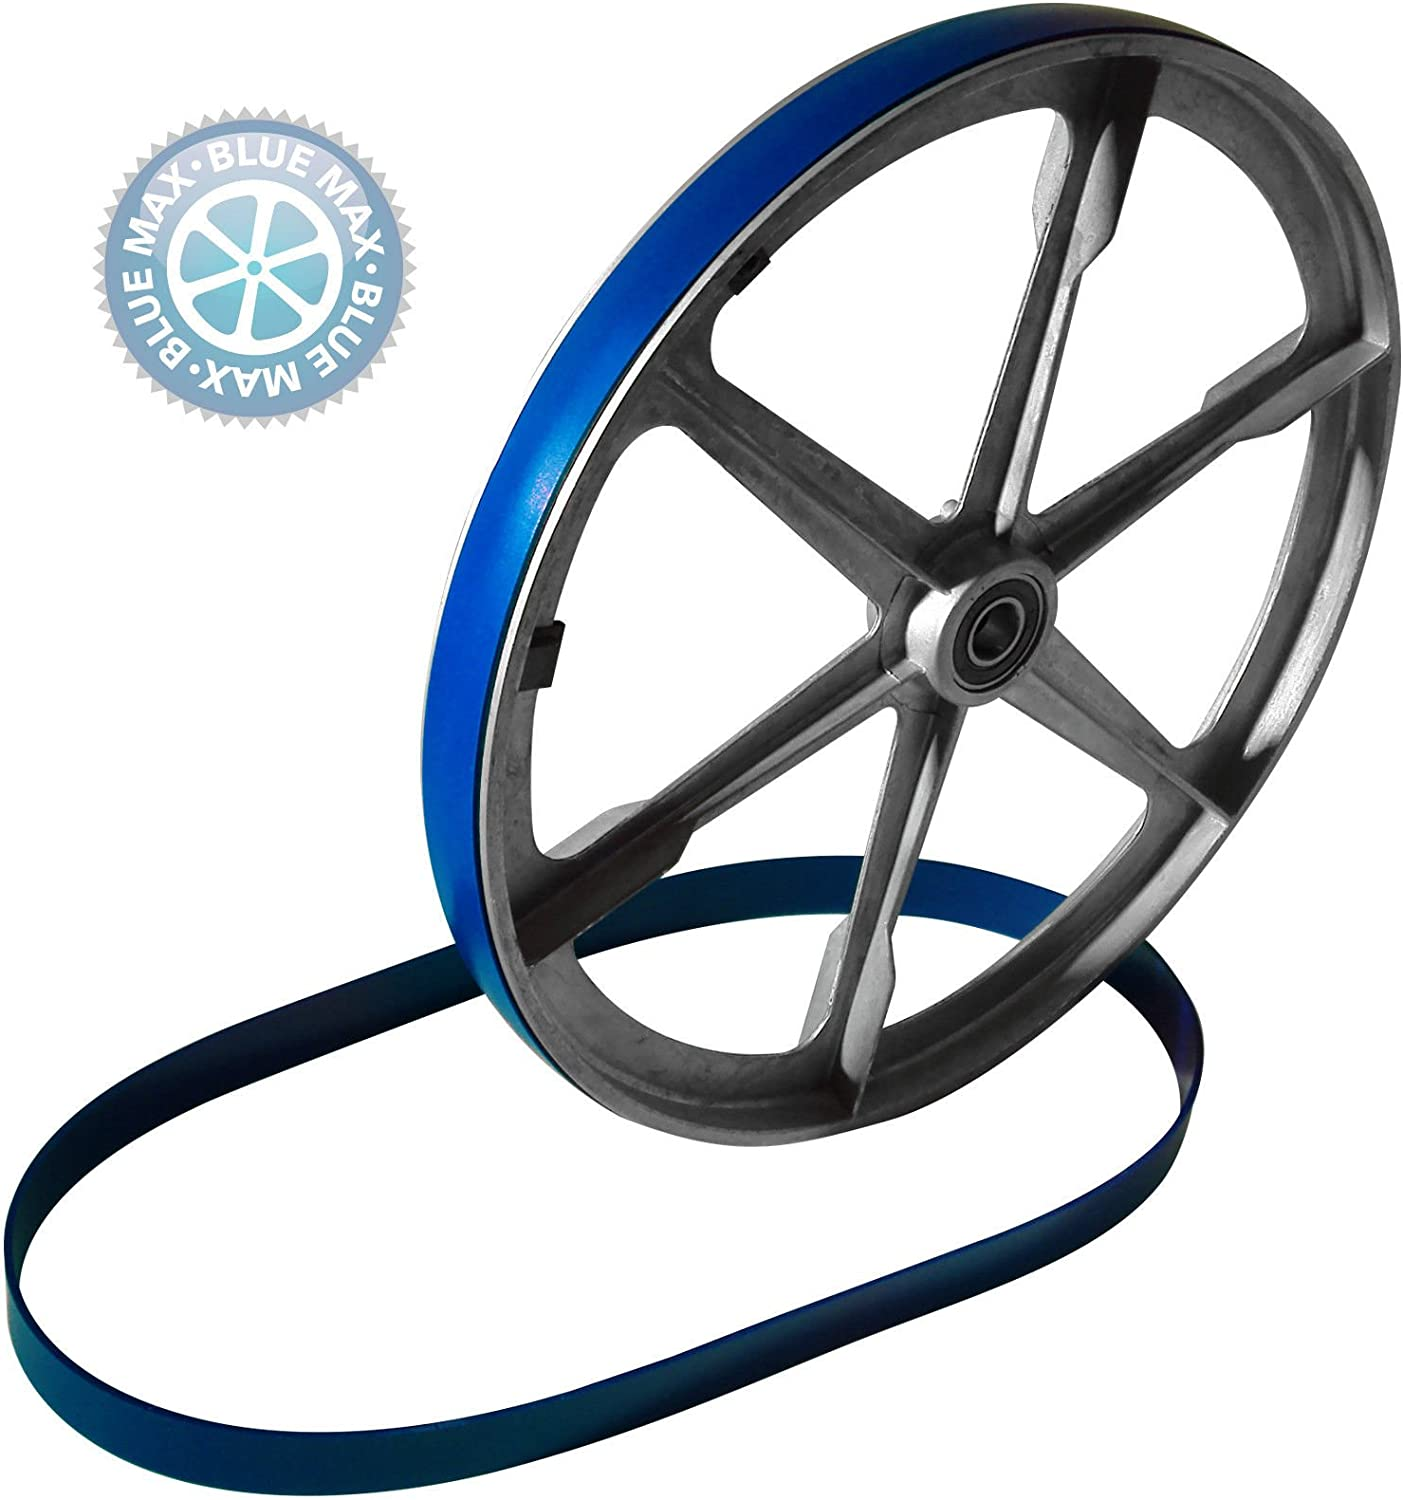 """2 BLUE MAX 13 1//2/"""" X 1/"""" ULTRA DUTY BAND SAW TIRES FOR RAPID BAND SAW"""